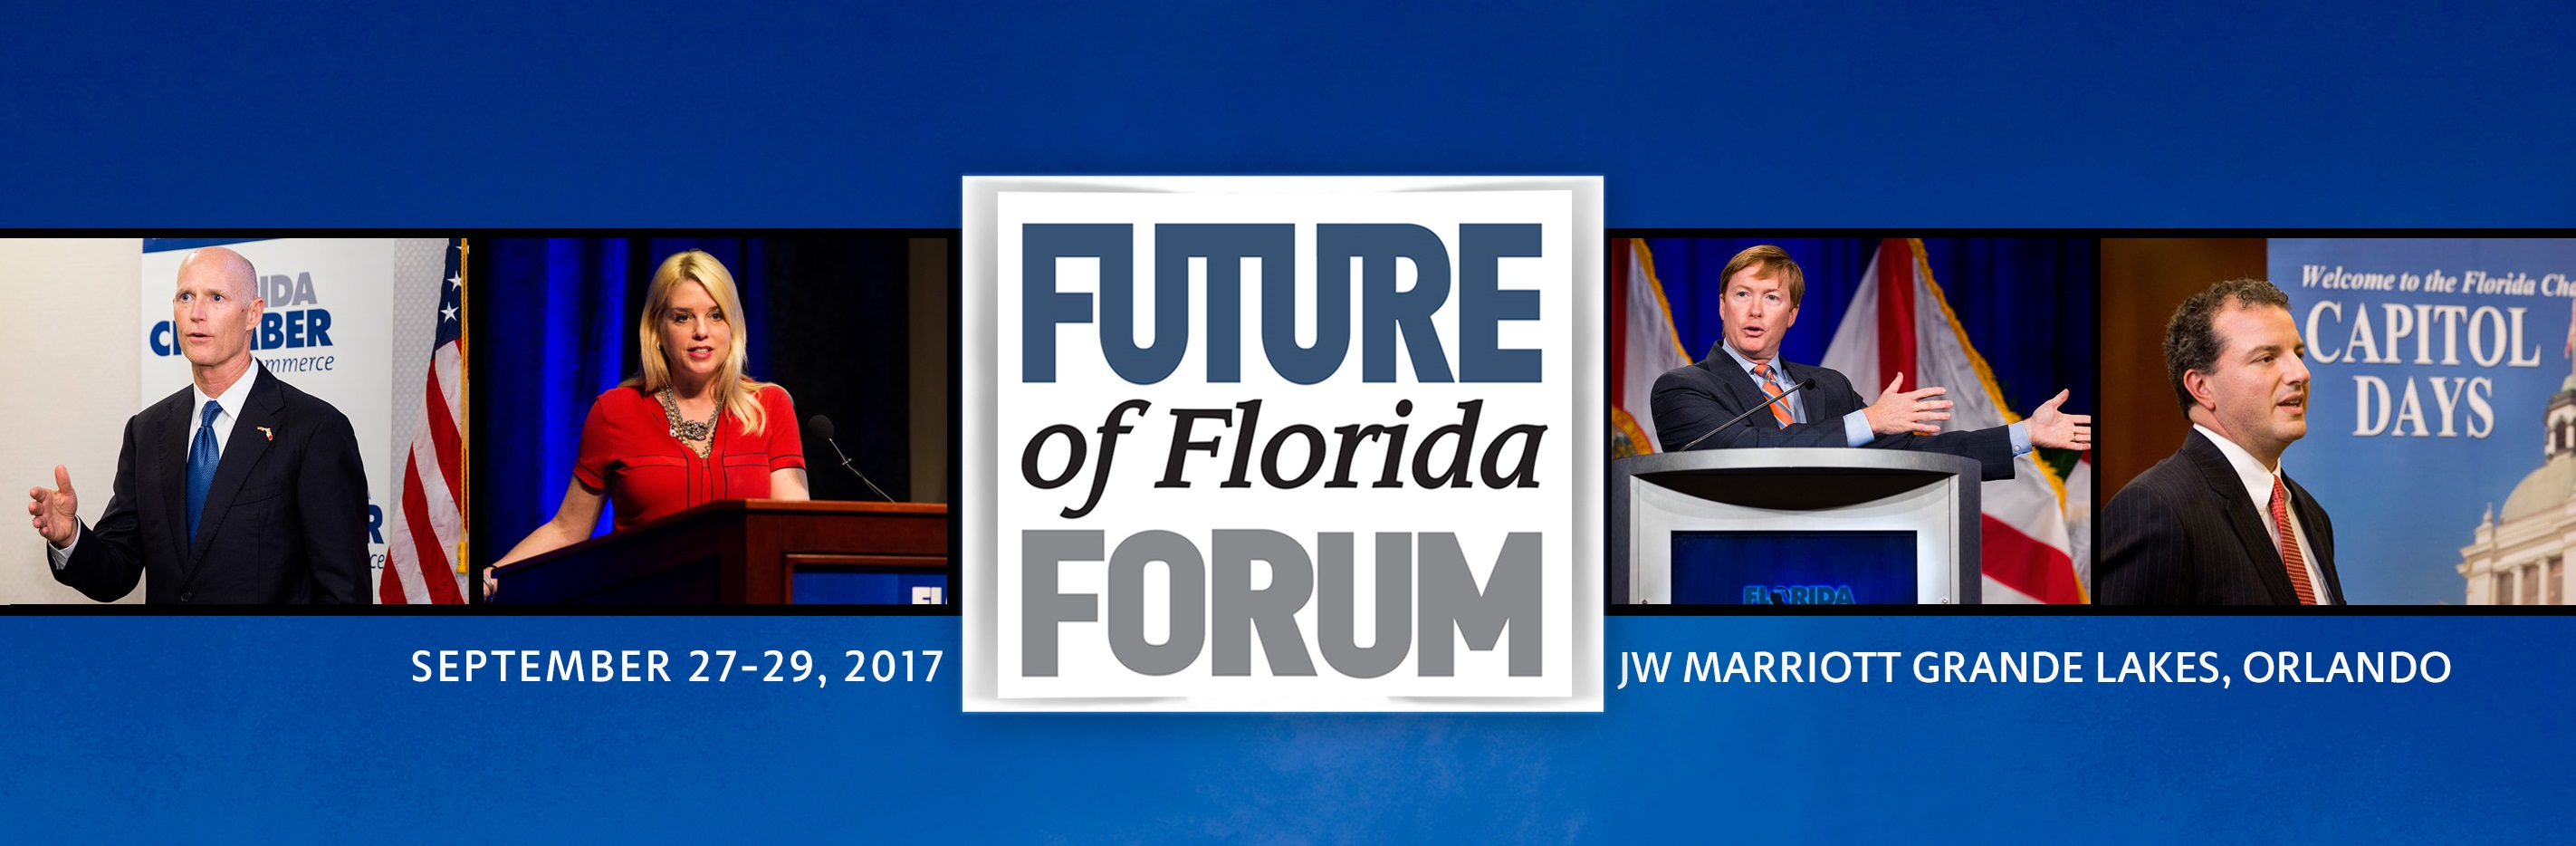 2017 Future of Florida Forum